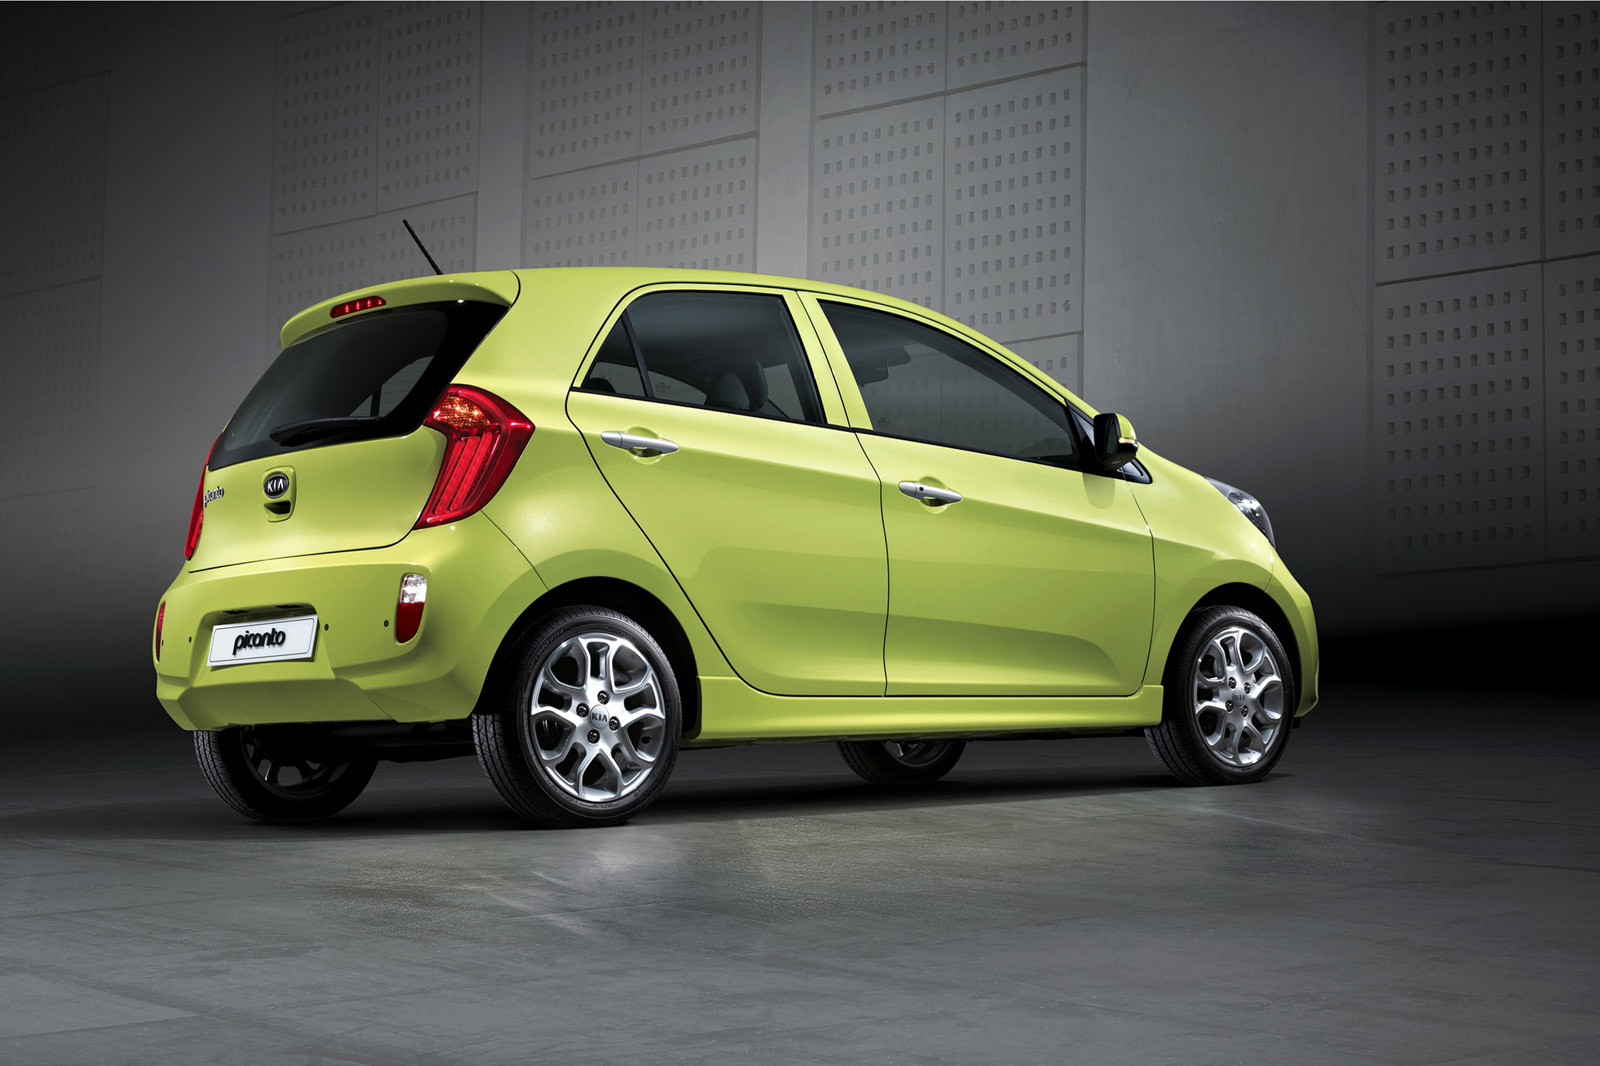 2011 Kia Picanto Hatchback 5-door